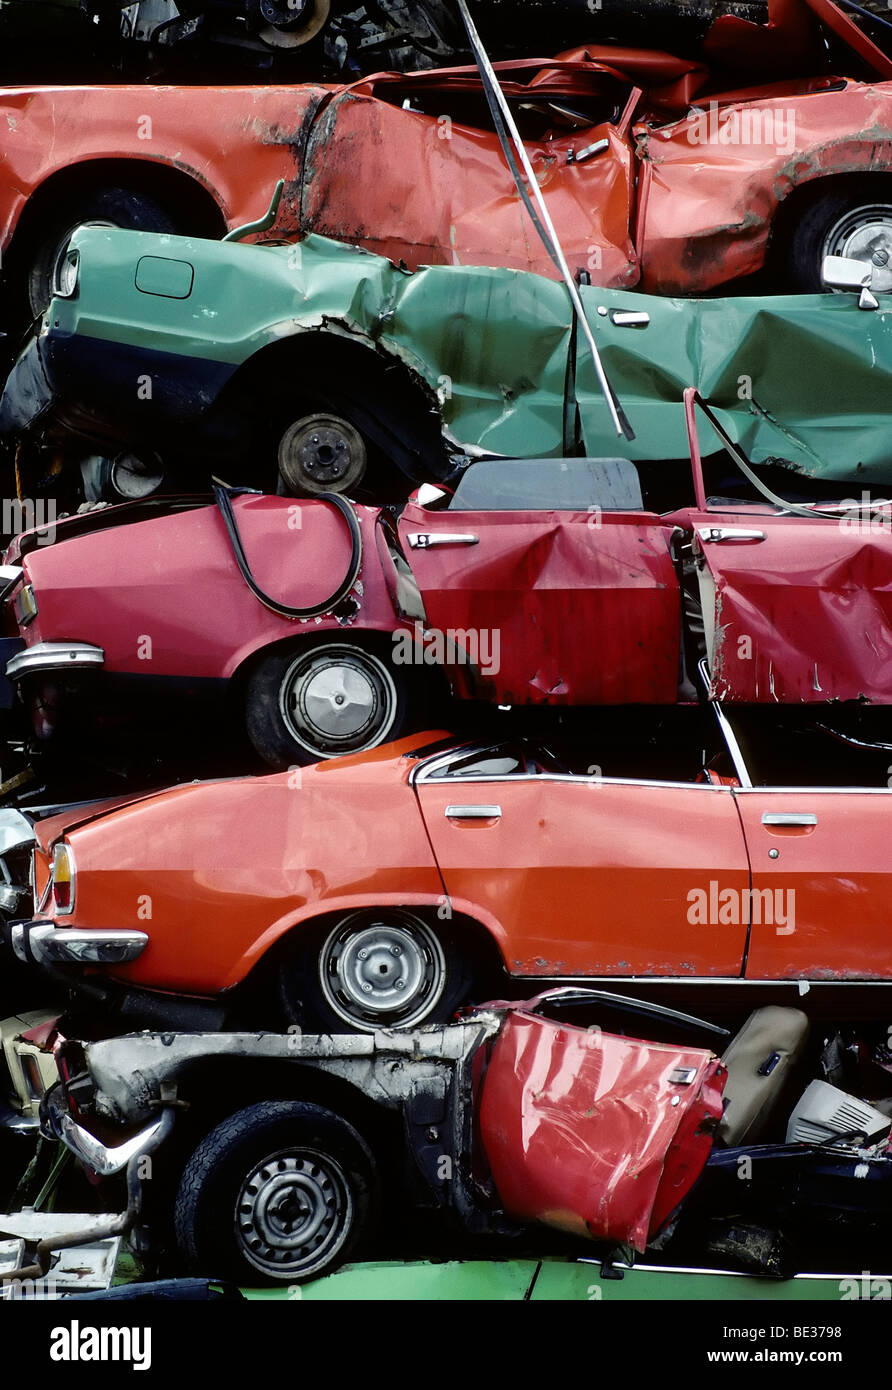 Car wrecks of old car models, stacked, auto recycling, junk yard ...